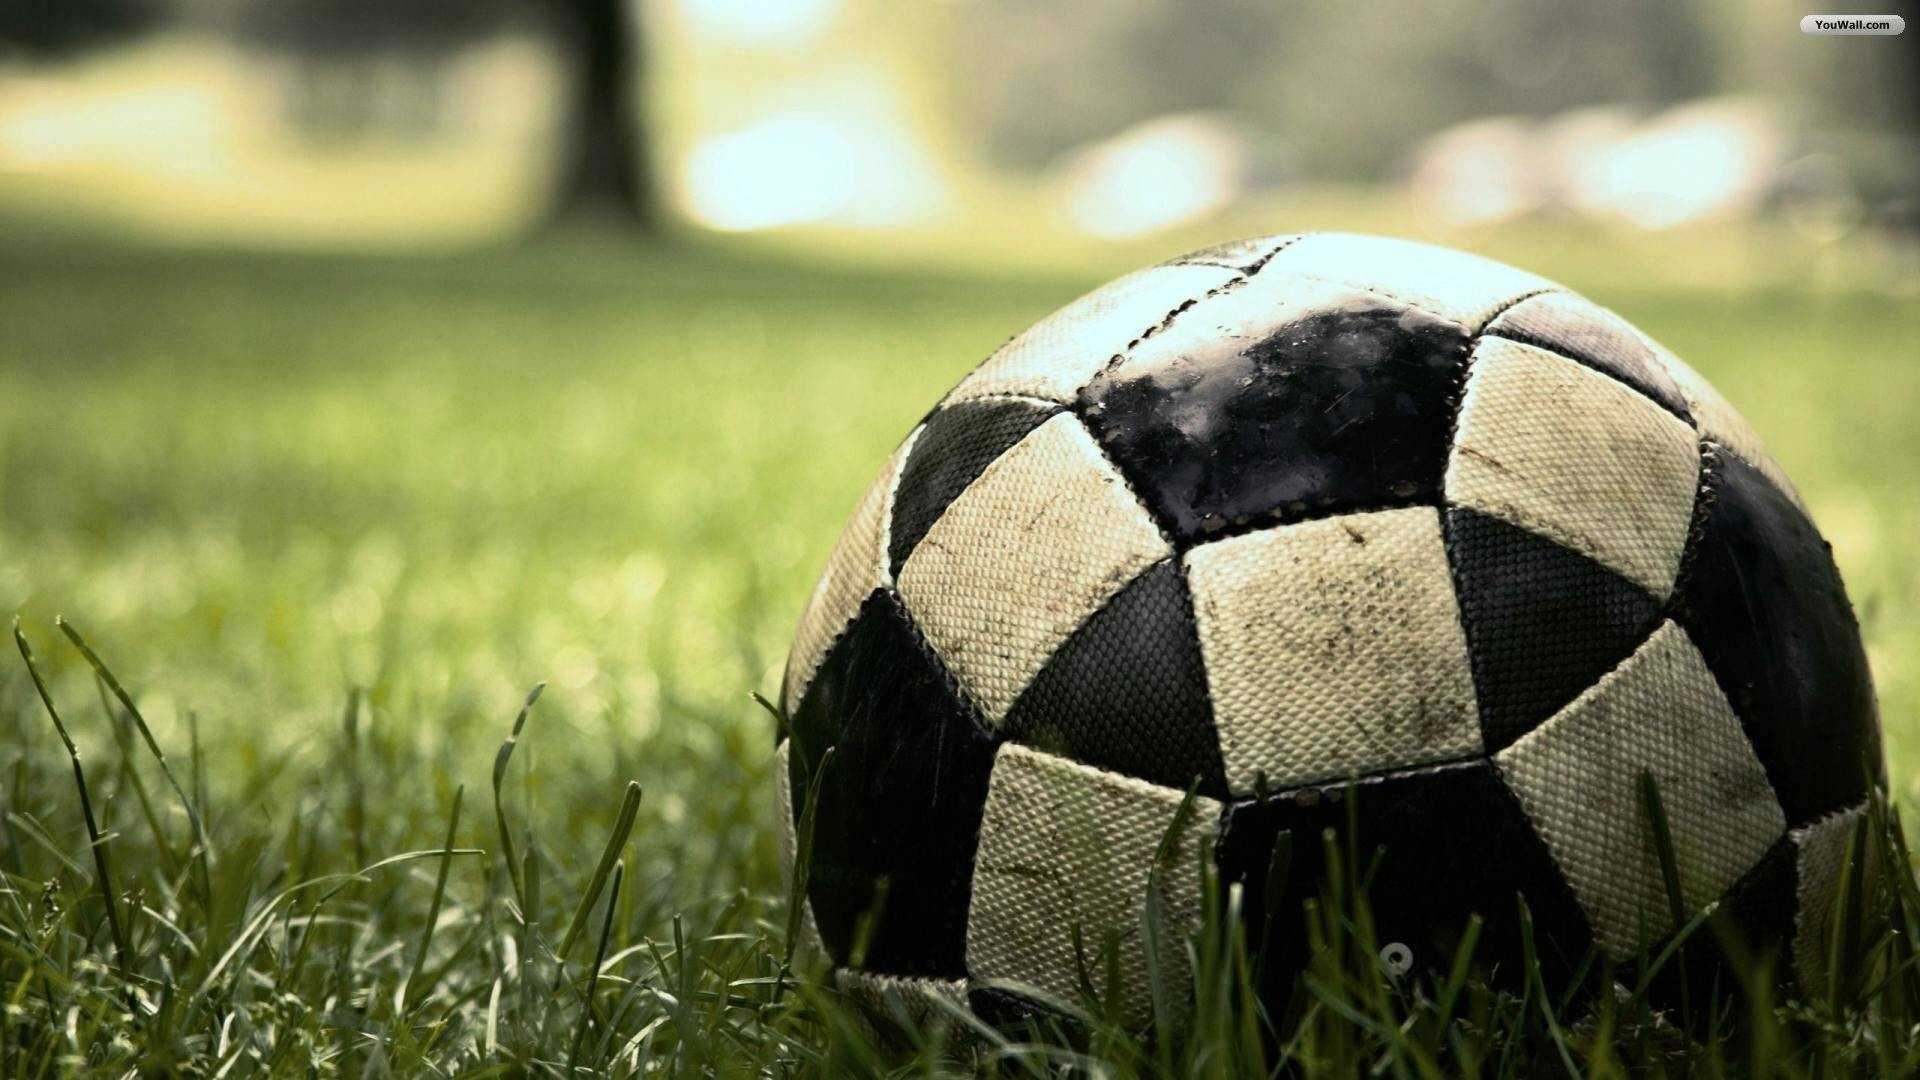 Amazing Soccer Wallpapers: Soccer Wallpaper ·① Download Free Beautiful HD Backgrounds